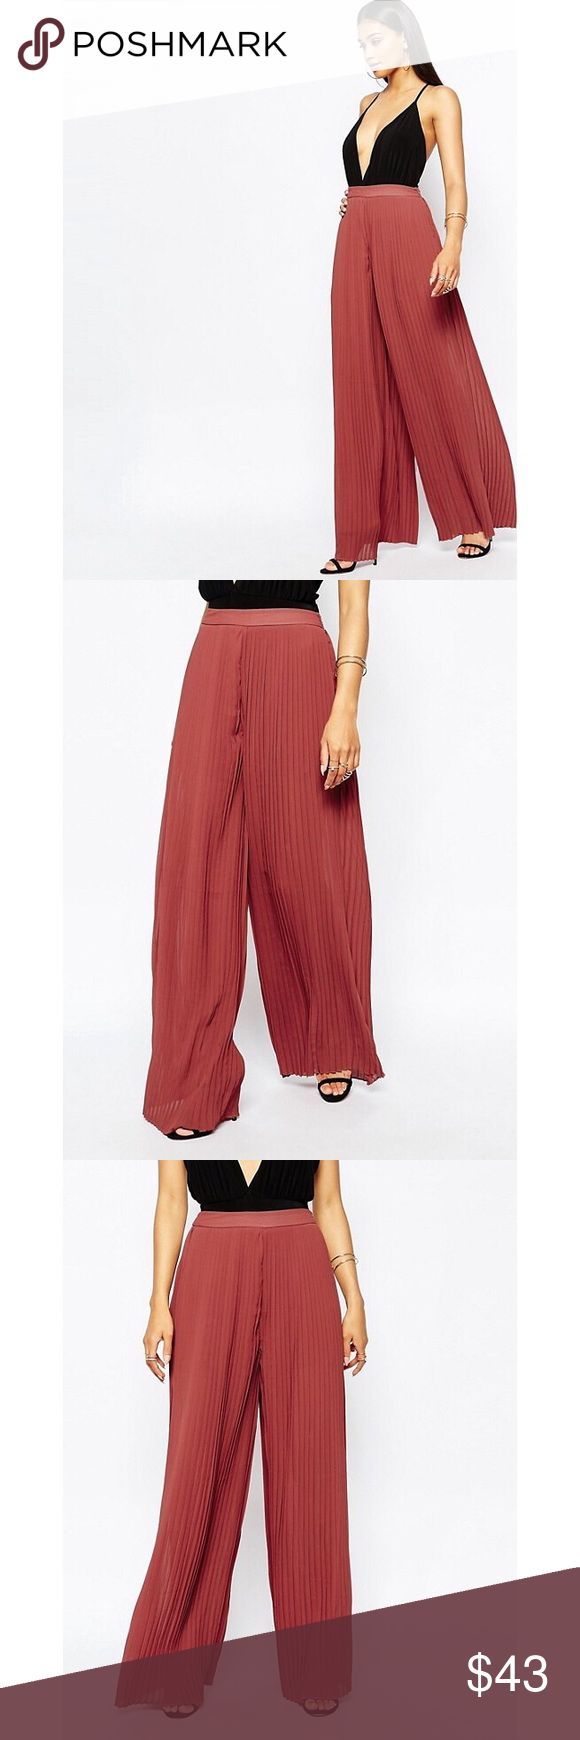 Black Missguided Pleated Wide Leg Trousers THIS LISTING IS FOR BLACK PANTS These wide leg pants are a must have in every girls wardrobe this season. We're loving these pleated pants with a small zip which is disguised at the side. Wear with a body suit and some strappy heels for a super chic evening look.  Materials: Polyester *Lined with same color shorts & stay sheer throughout the floor sweeping wide leg silhouette  Tag was removed from pants as seen in last photo; Original manufacturer…